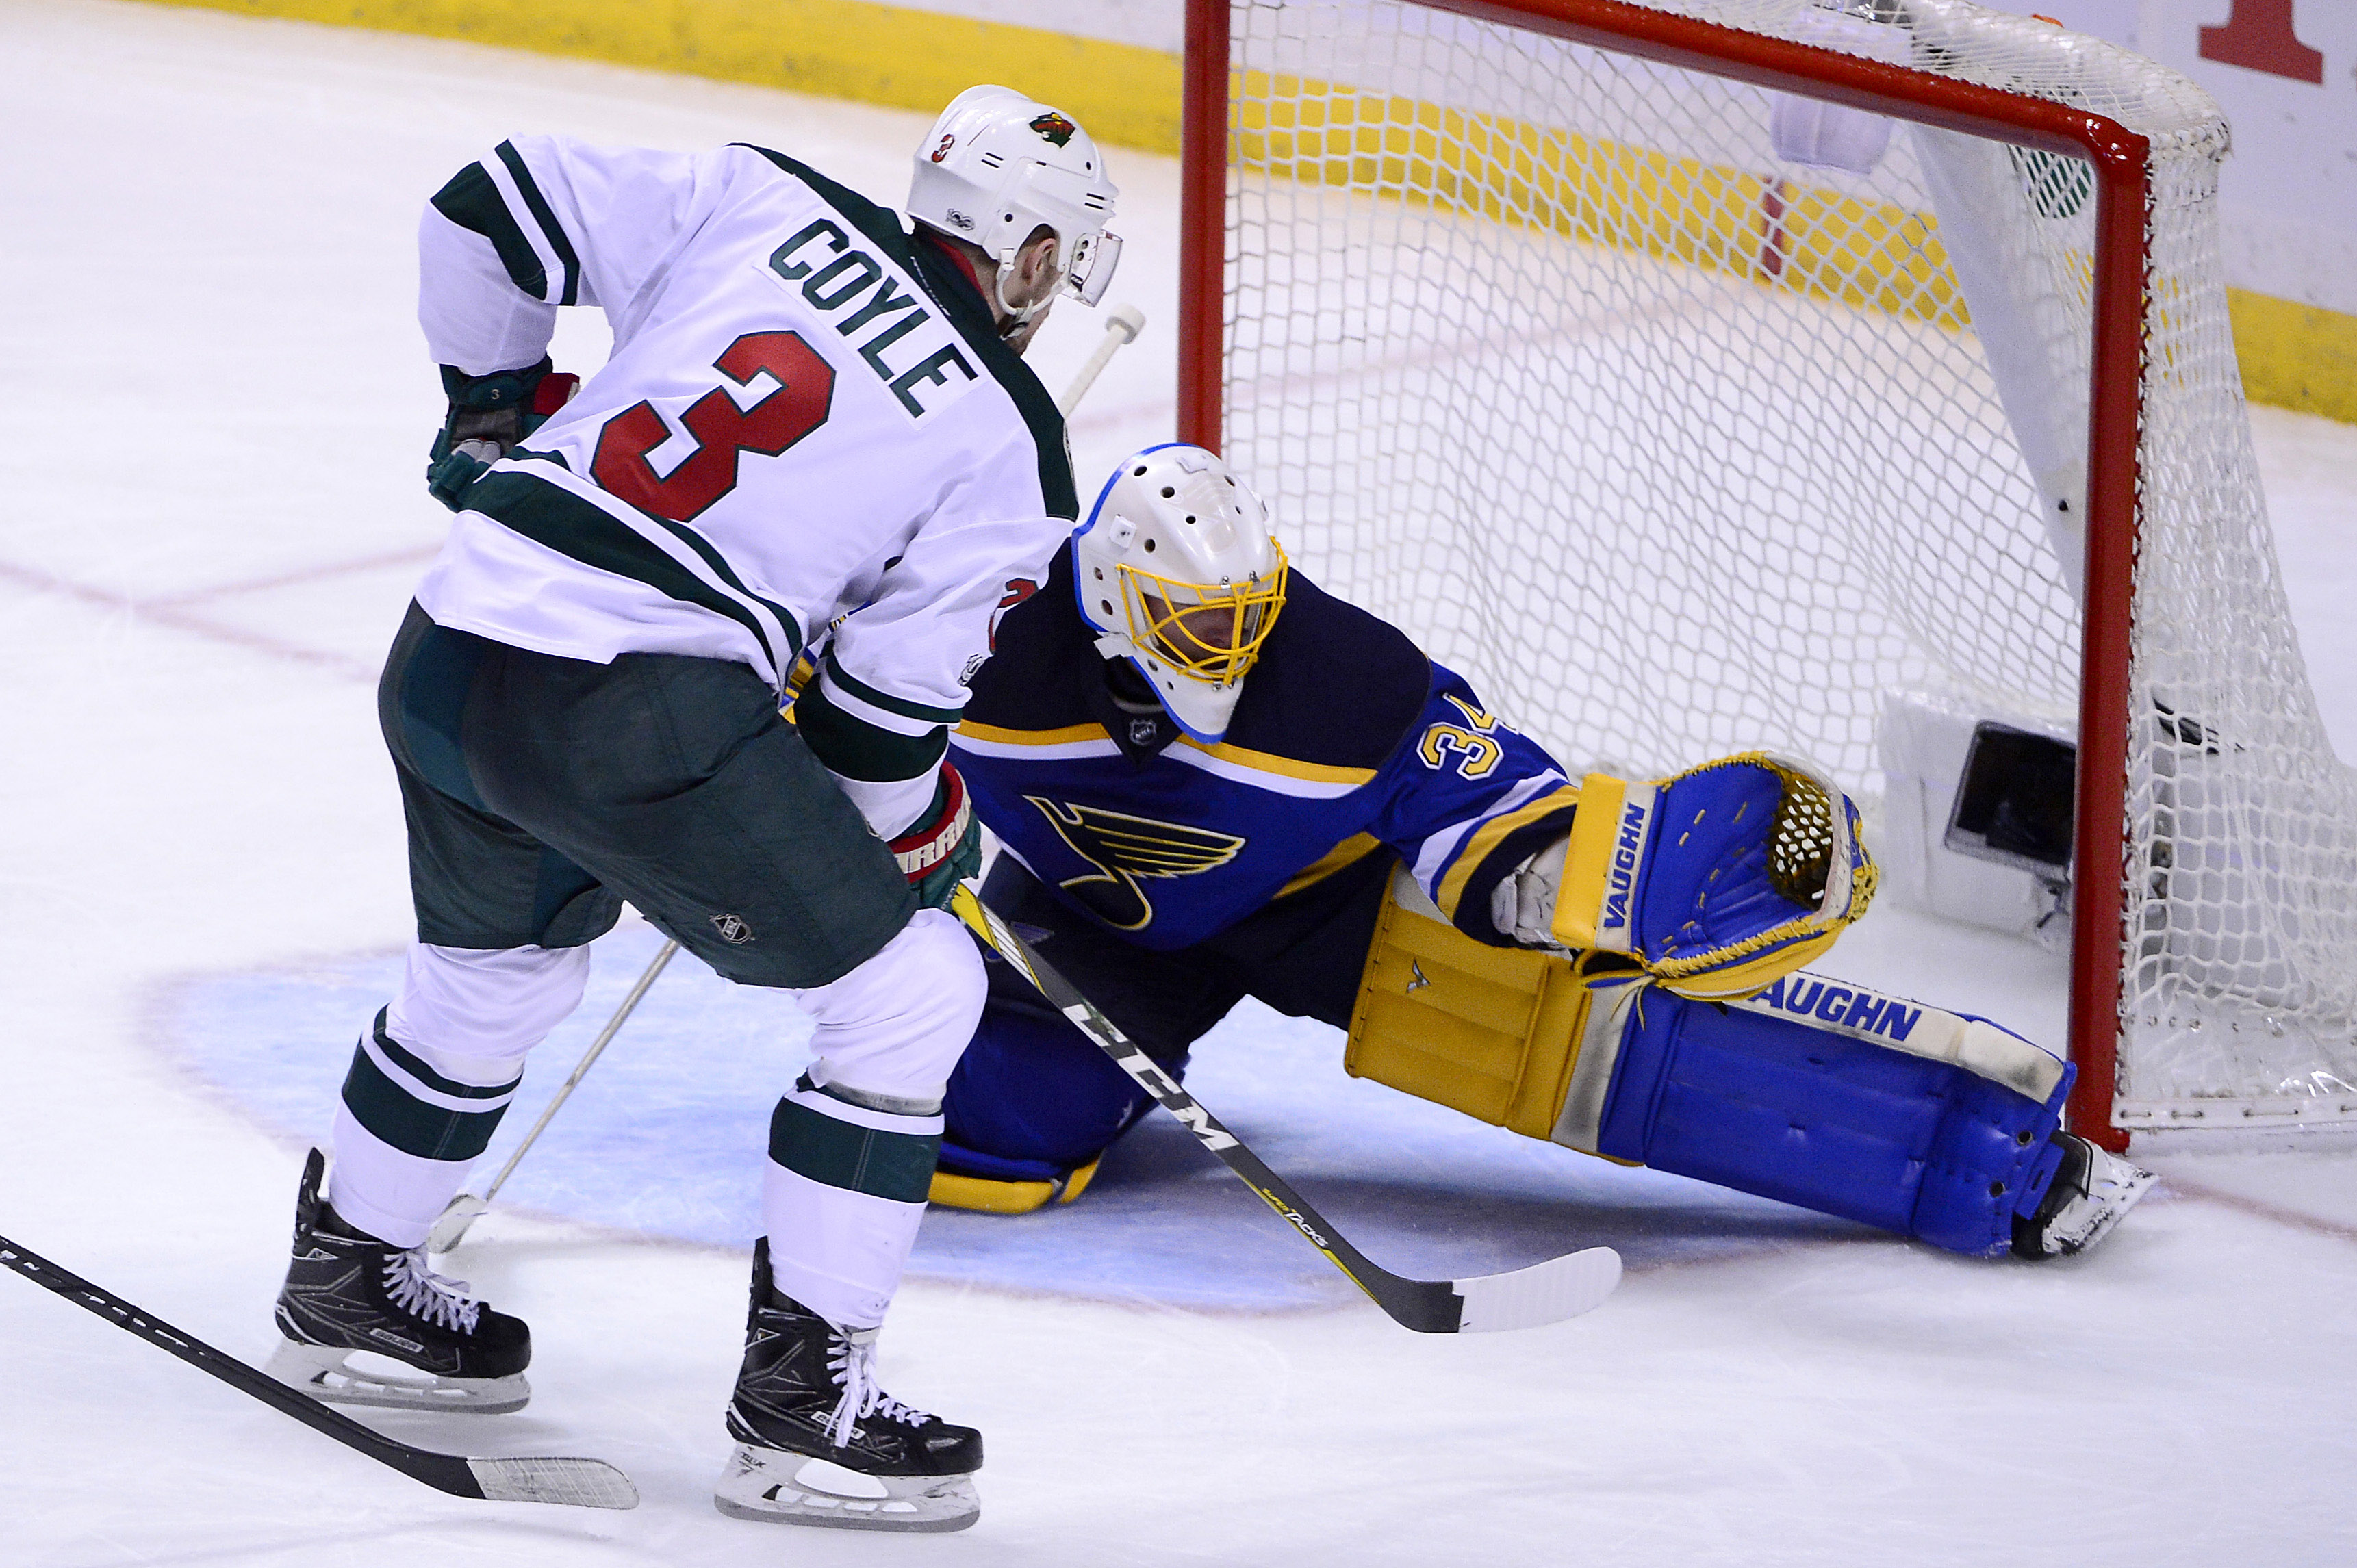 10021129-nhl-stanley-cup-playoffs-minnesota-wild-at-st.-louis-blues